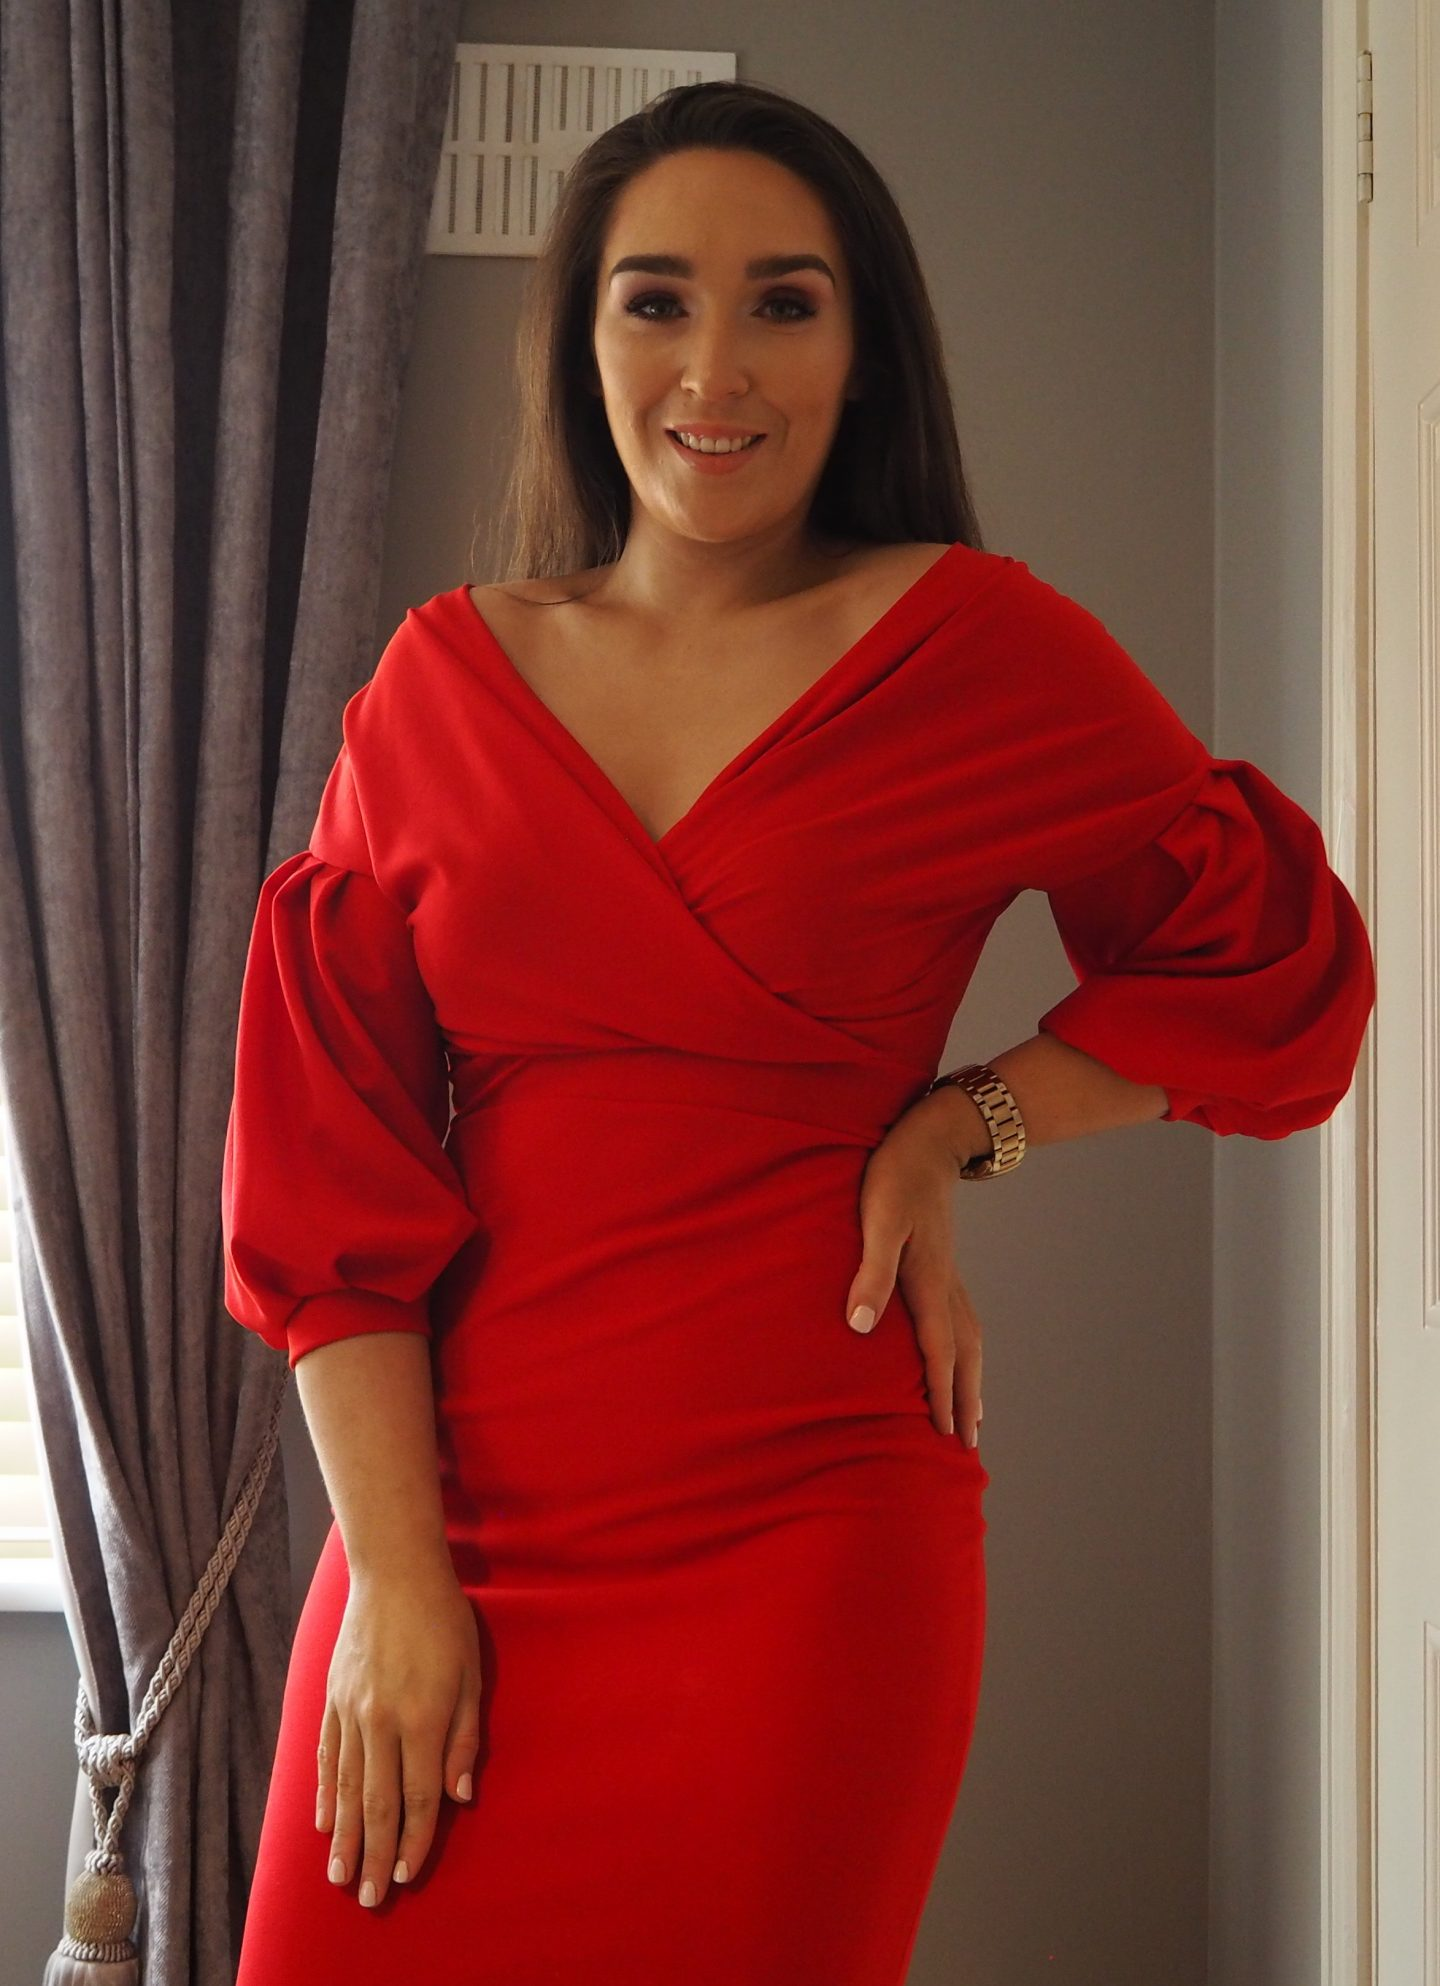 Femme Luxe Red Dress https://femmeluxefinery.co.uk